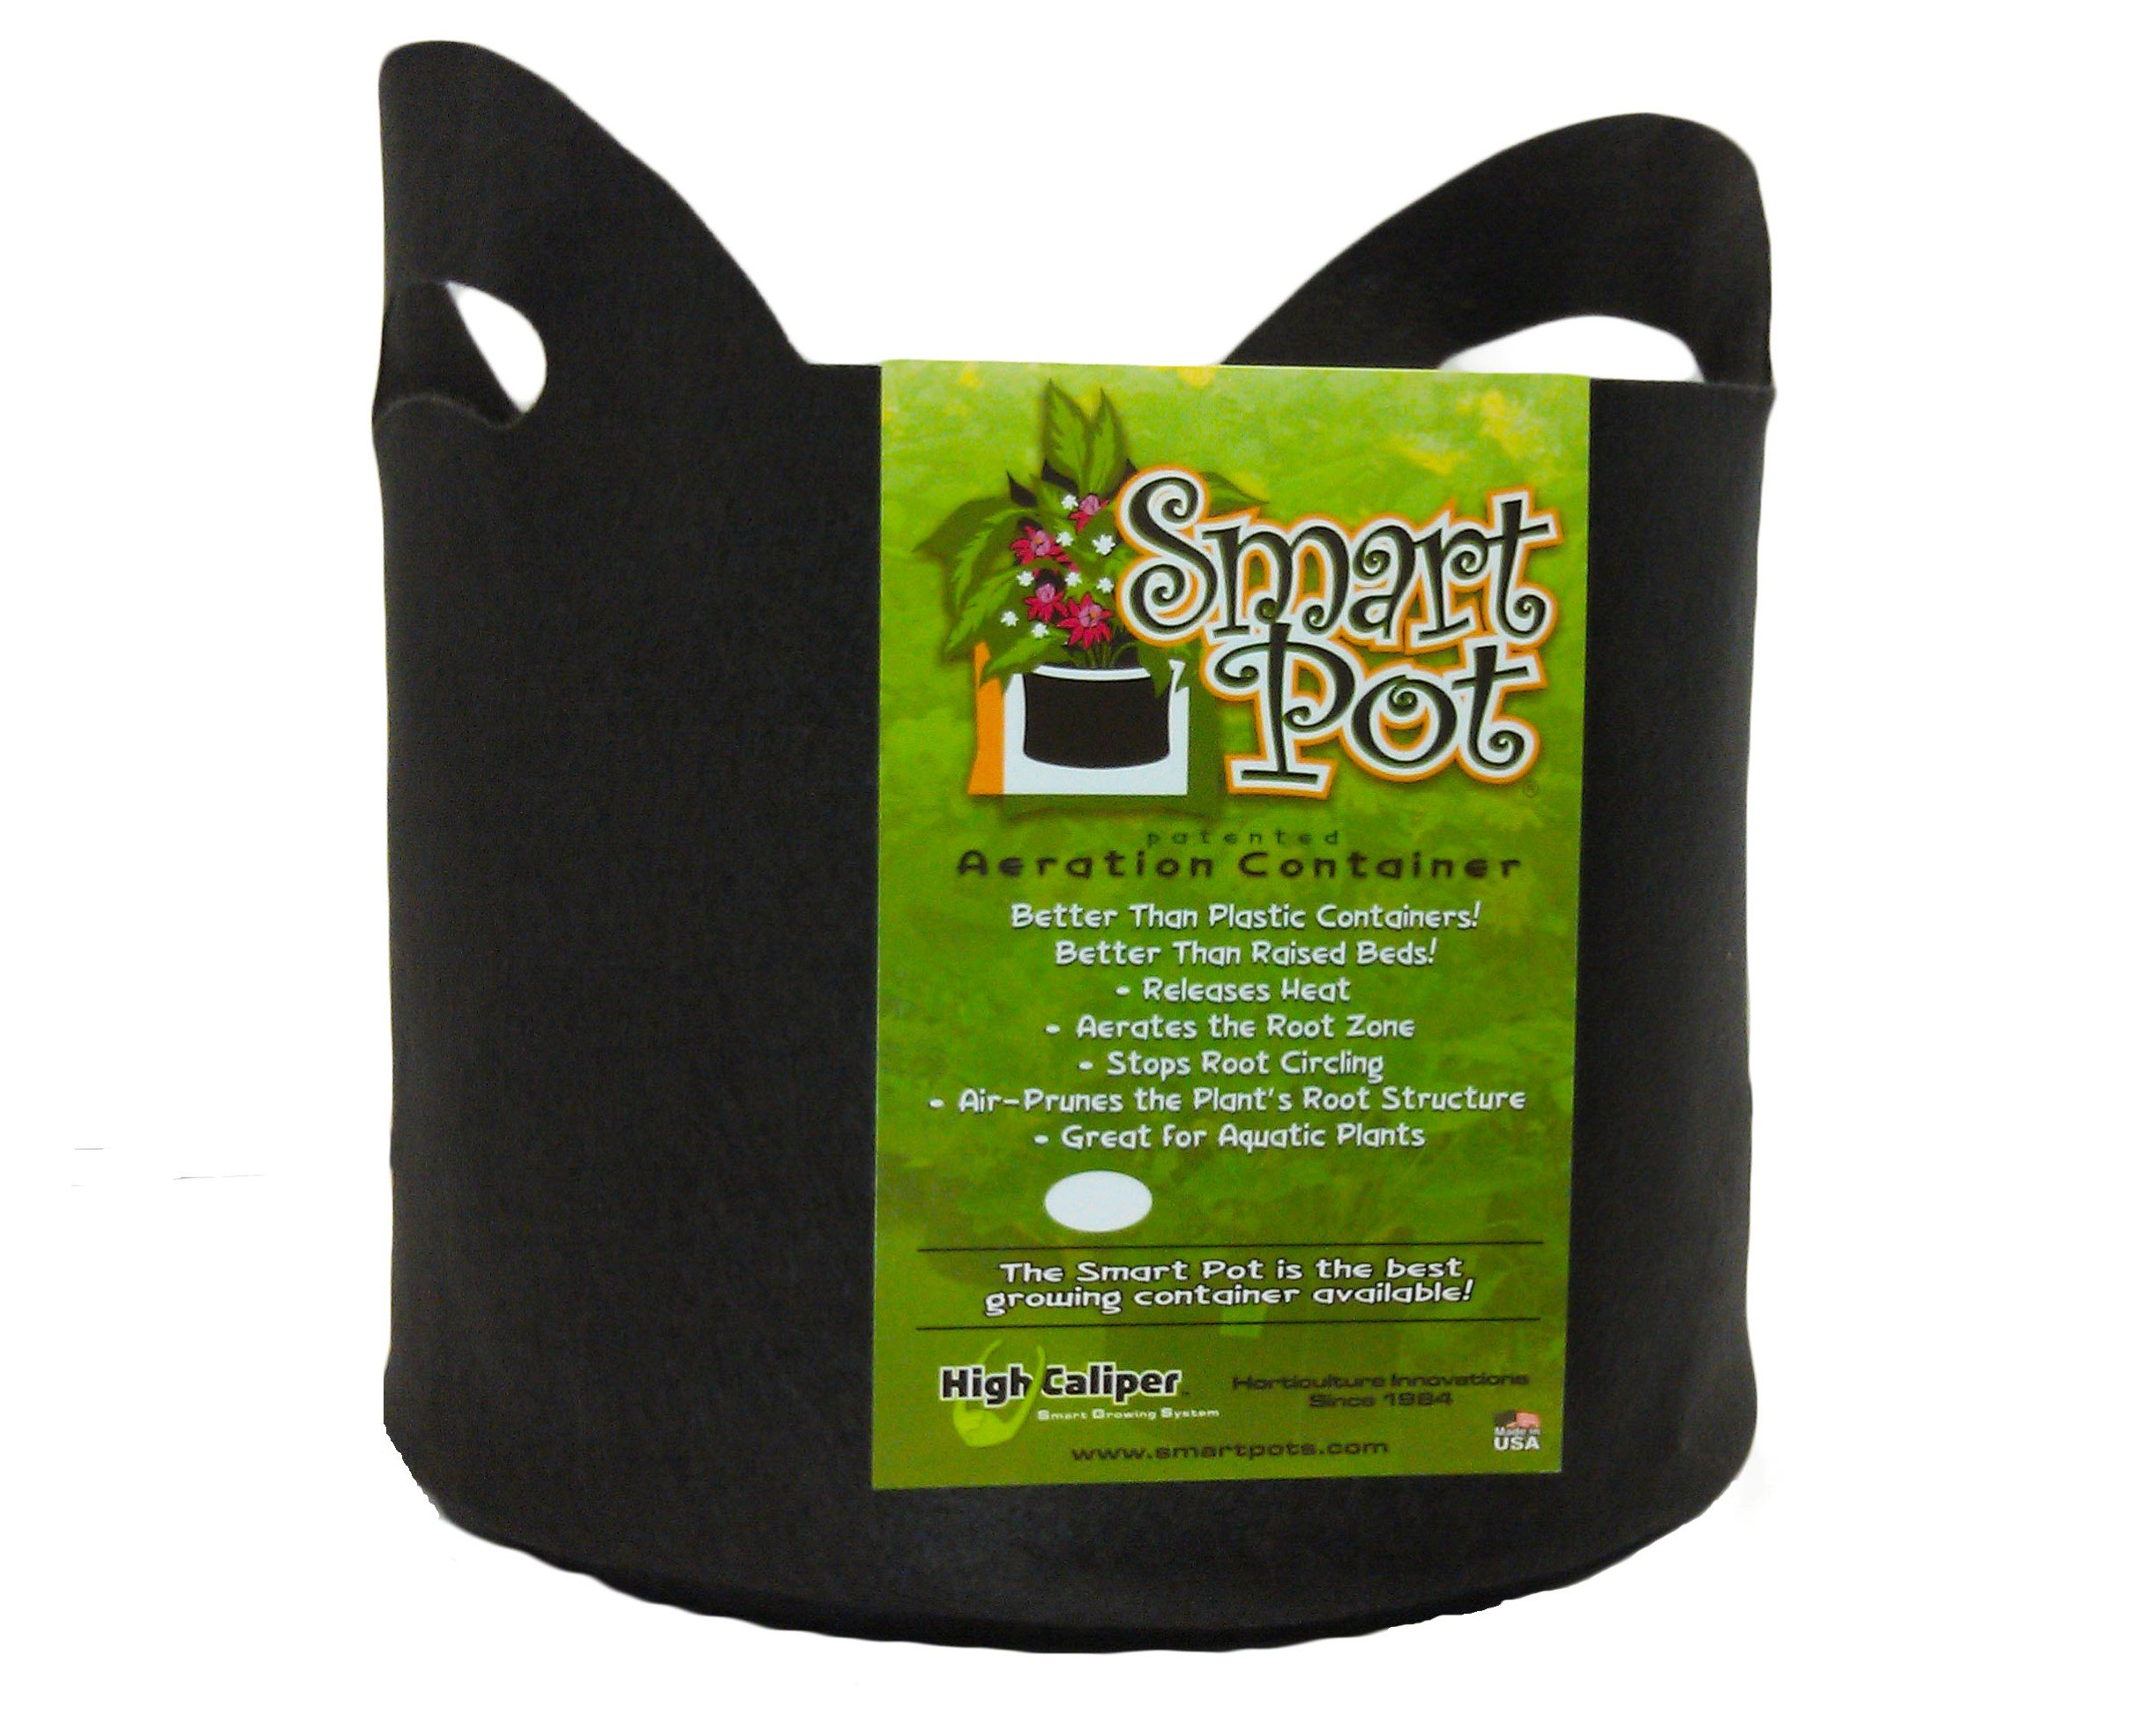 Smart Pots 5-Gallon Smart Pot Soft-Sided Container, Black with Cut handles